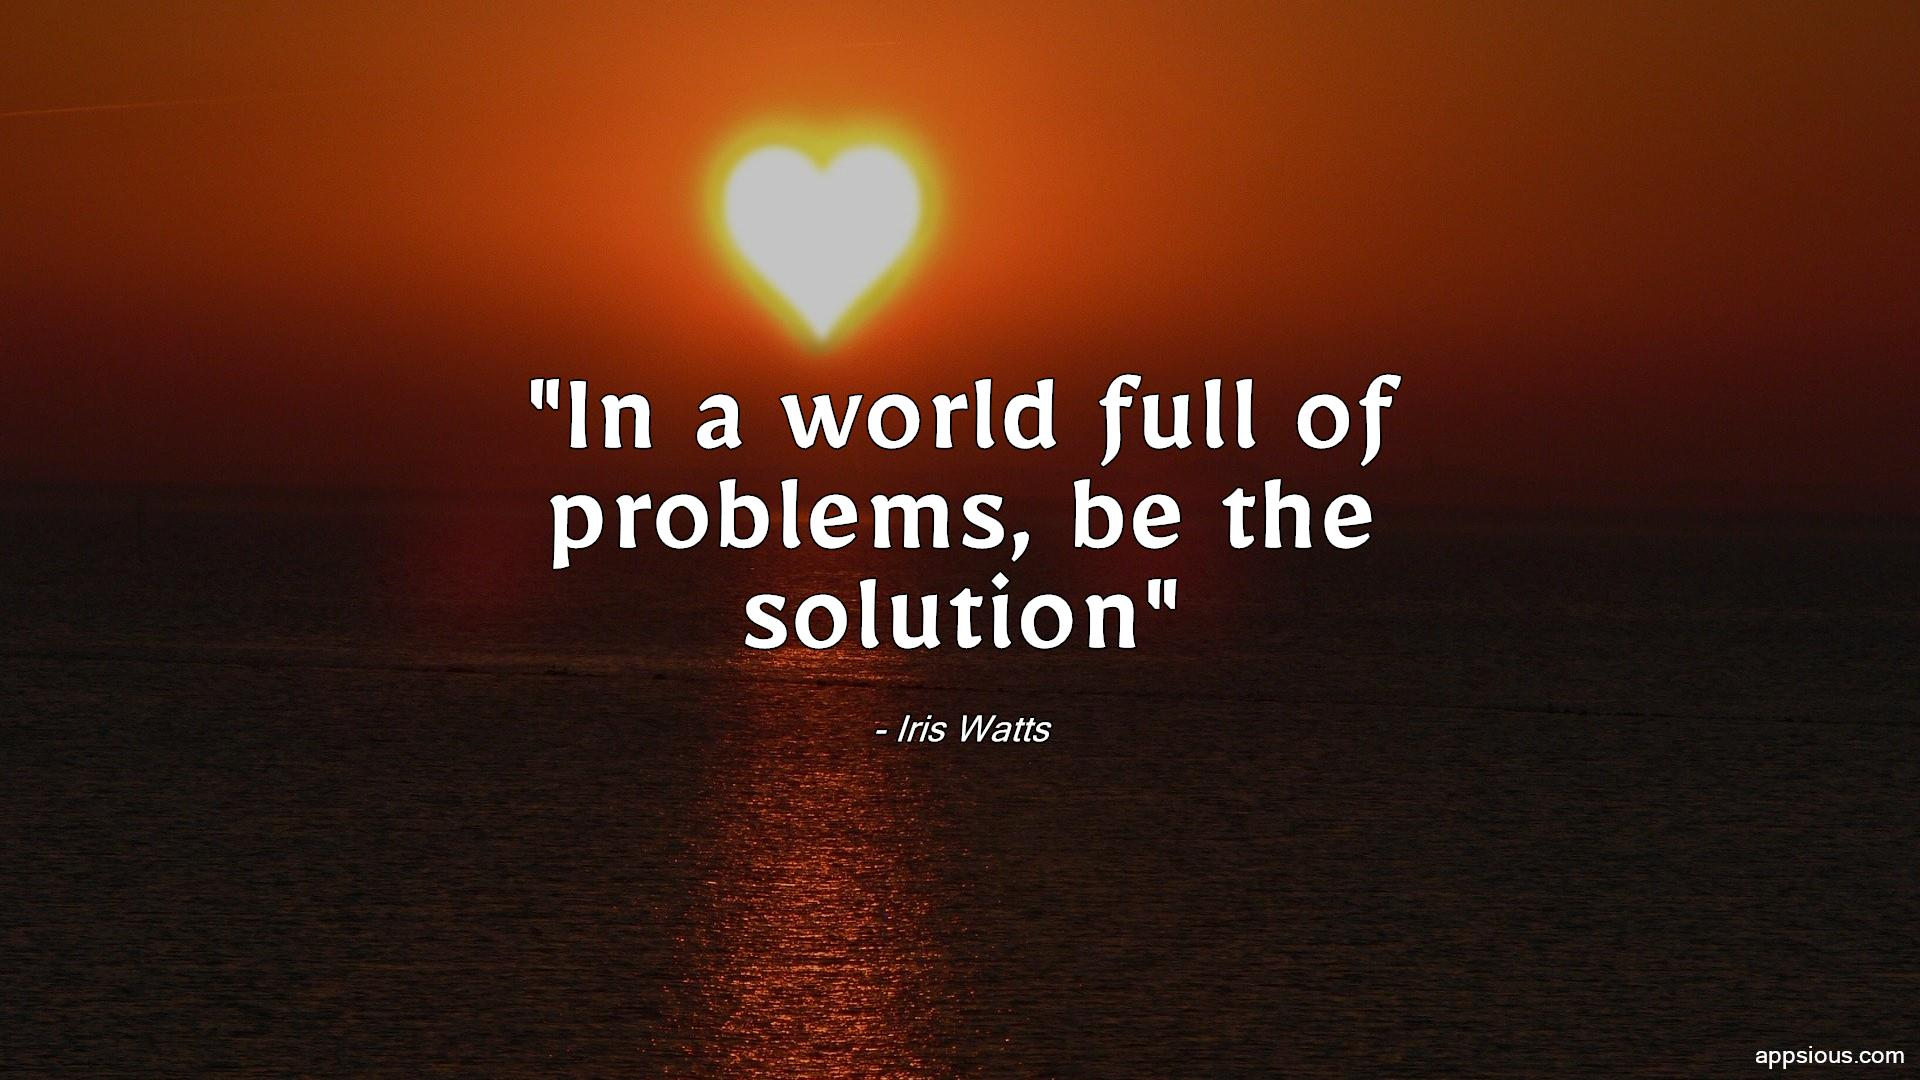 In a world full of problems, be the solution